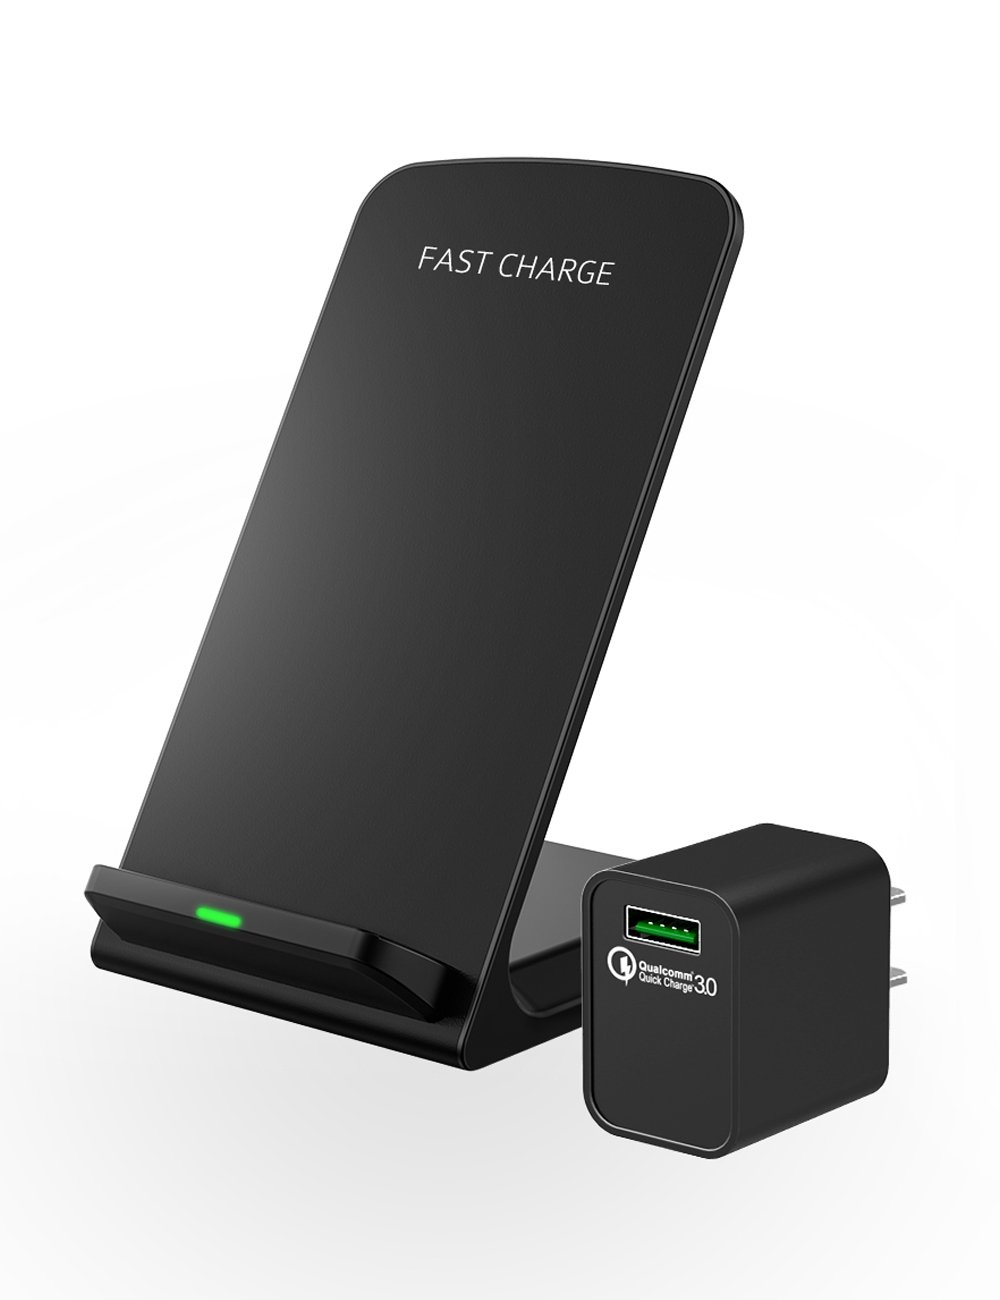 Seneo (Upgraded) Wireless Charger, Qi Certified Fast Wireless Charger Stand with QC 3.0 Adapter for Galaxy S9/S9+ Note 8/5 S8/S8+ S7/S7 Edge S6 Edge+, Standard Qi Charger for iPhoneX/8/8 Plus by Seneo (Image #1)